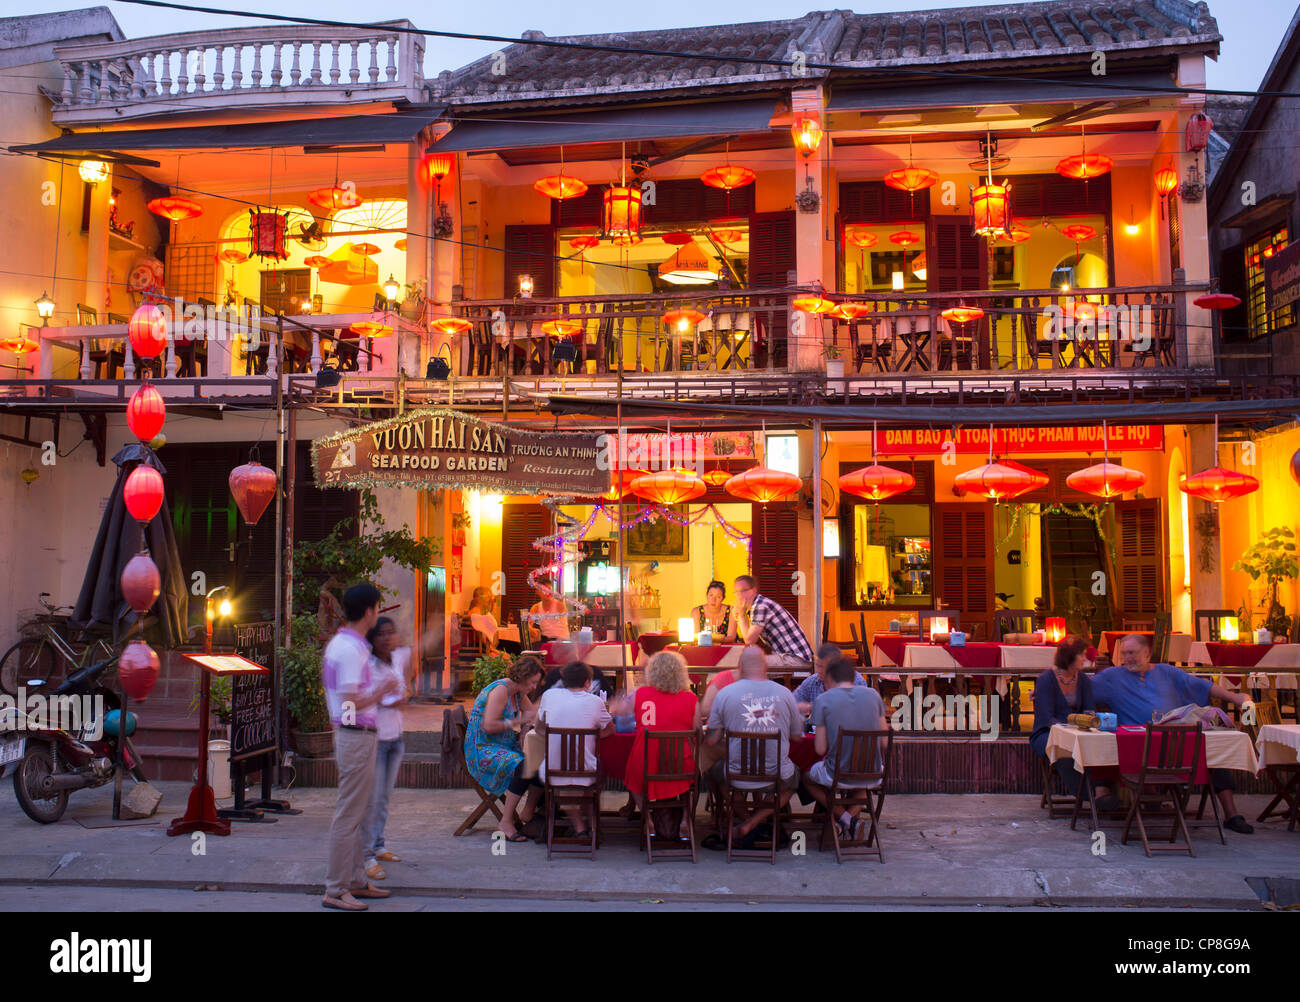 Evening view of tourist restaurant in UNESCO heritage town of Hoian in Vietnam - Stock Image